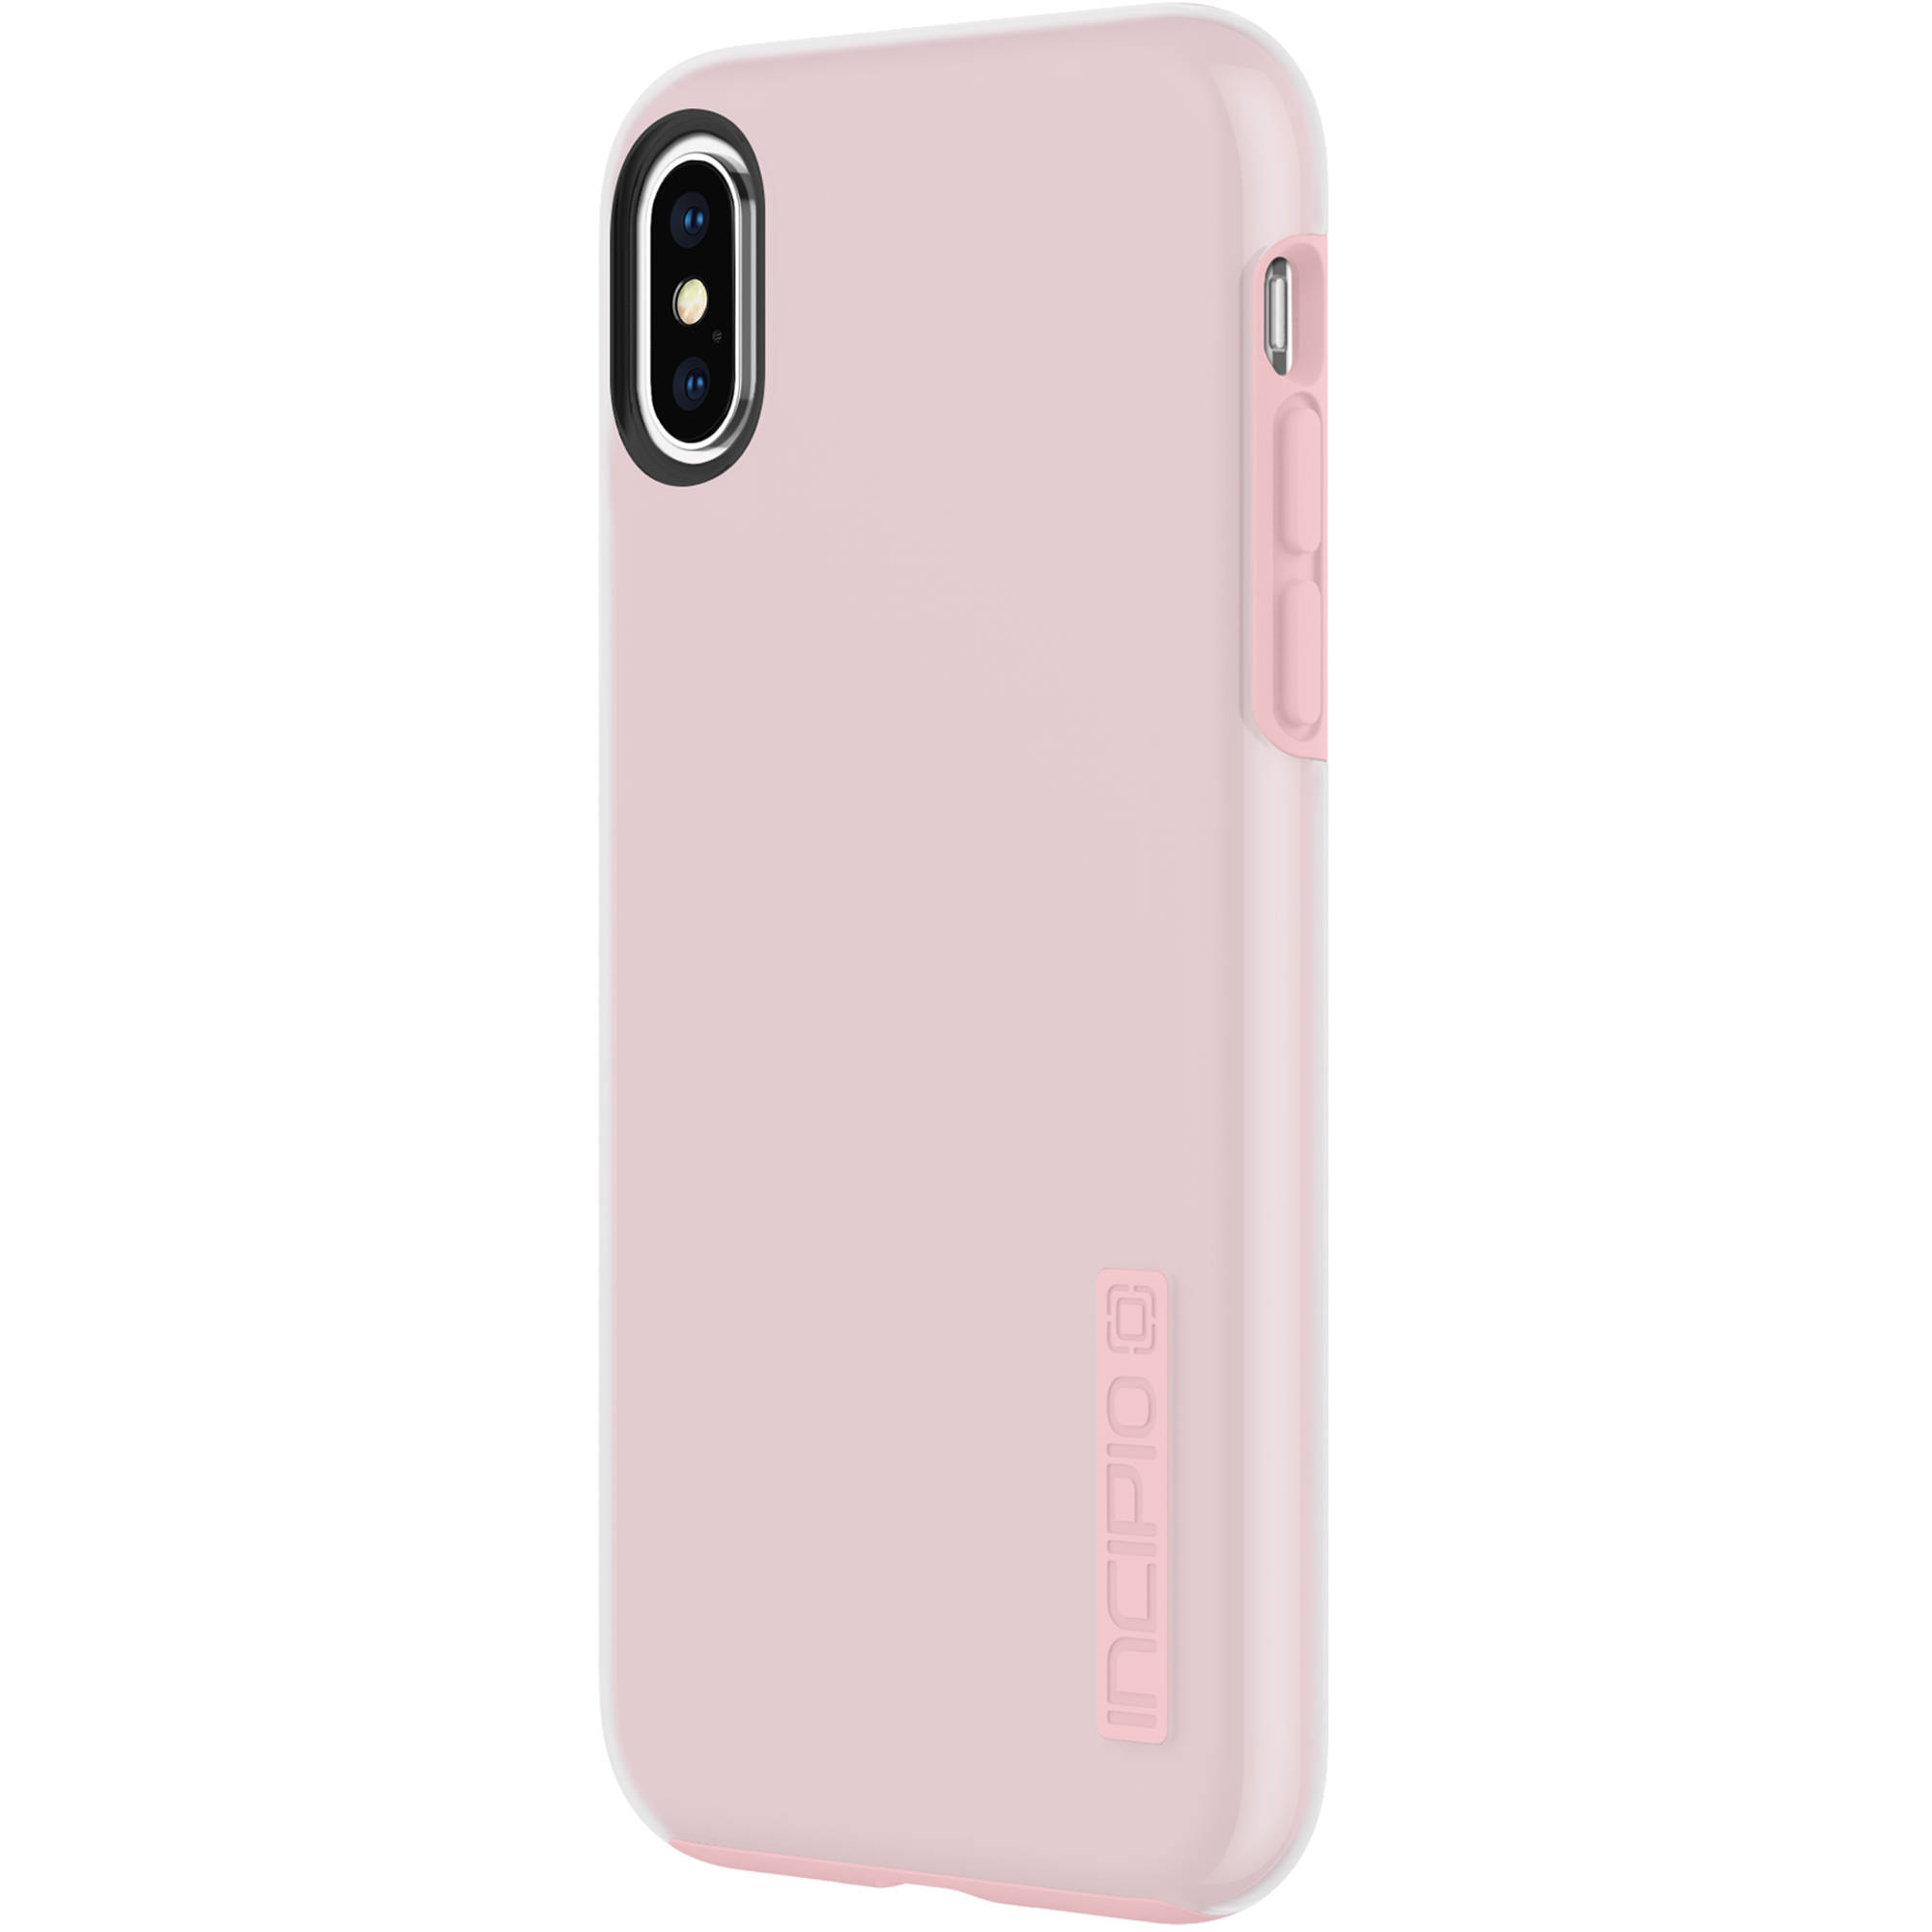 new style 5c65d 1cce2 Incipio DualPro Case for iPhone Xs (Raspberry Ice) IPH-1776-RBI